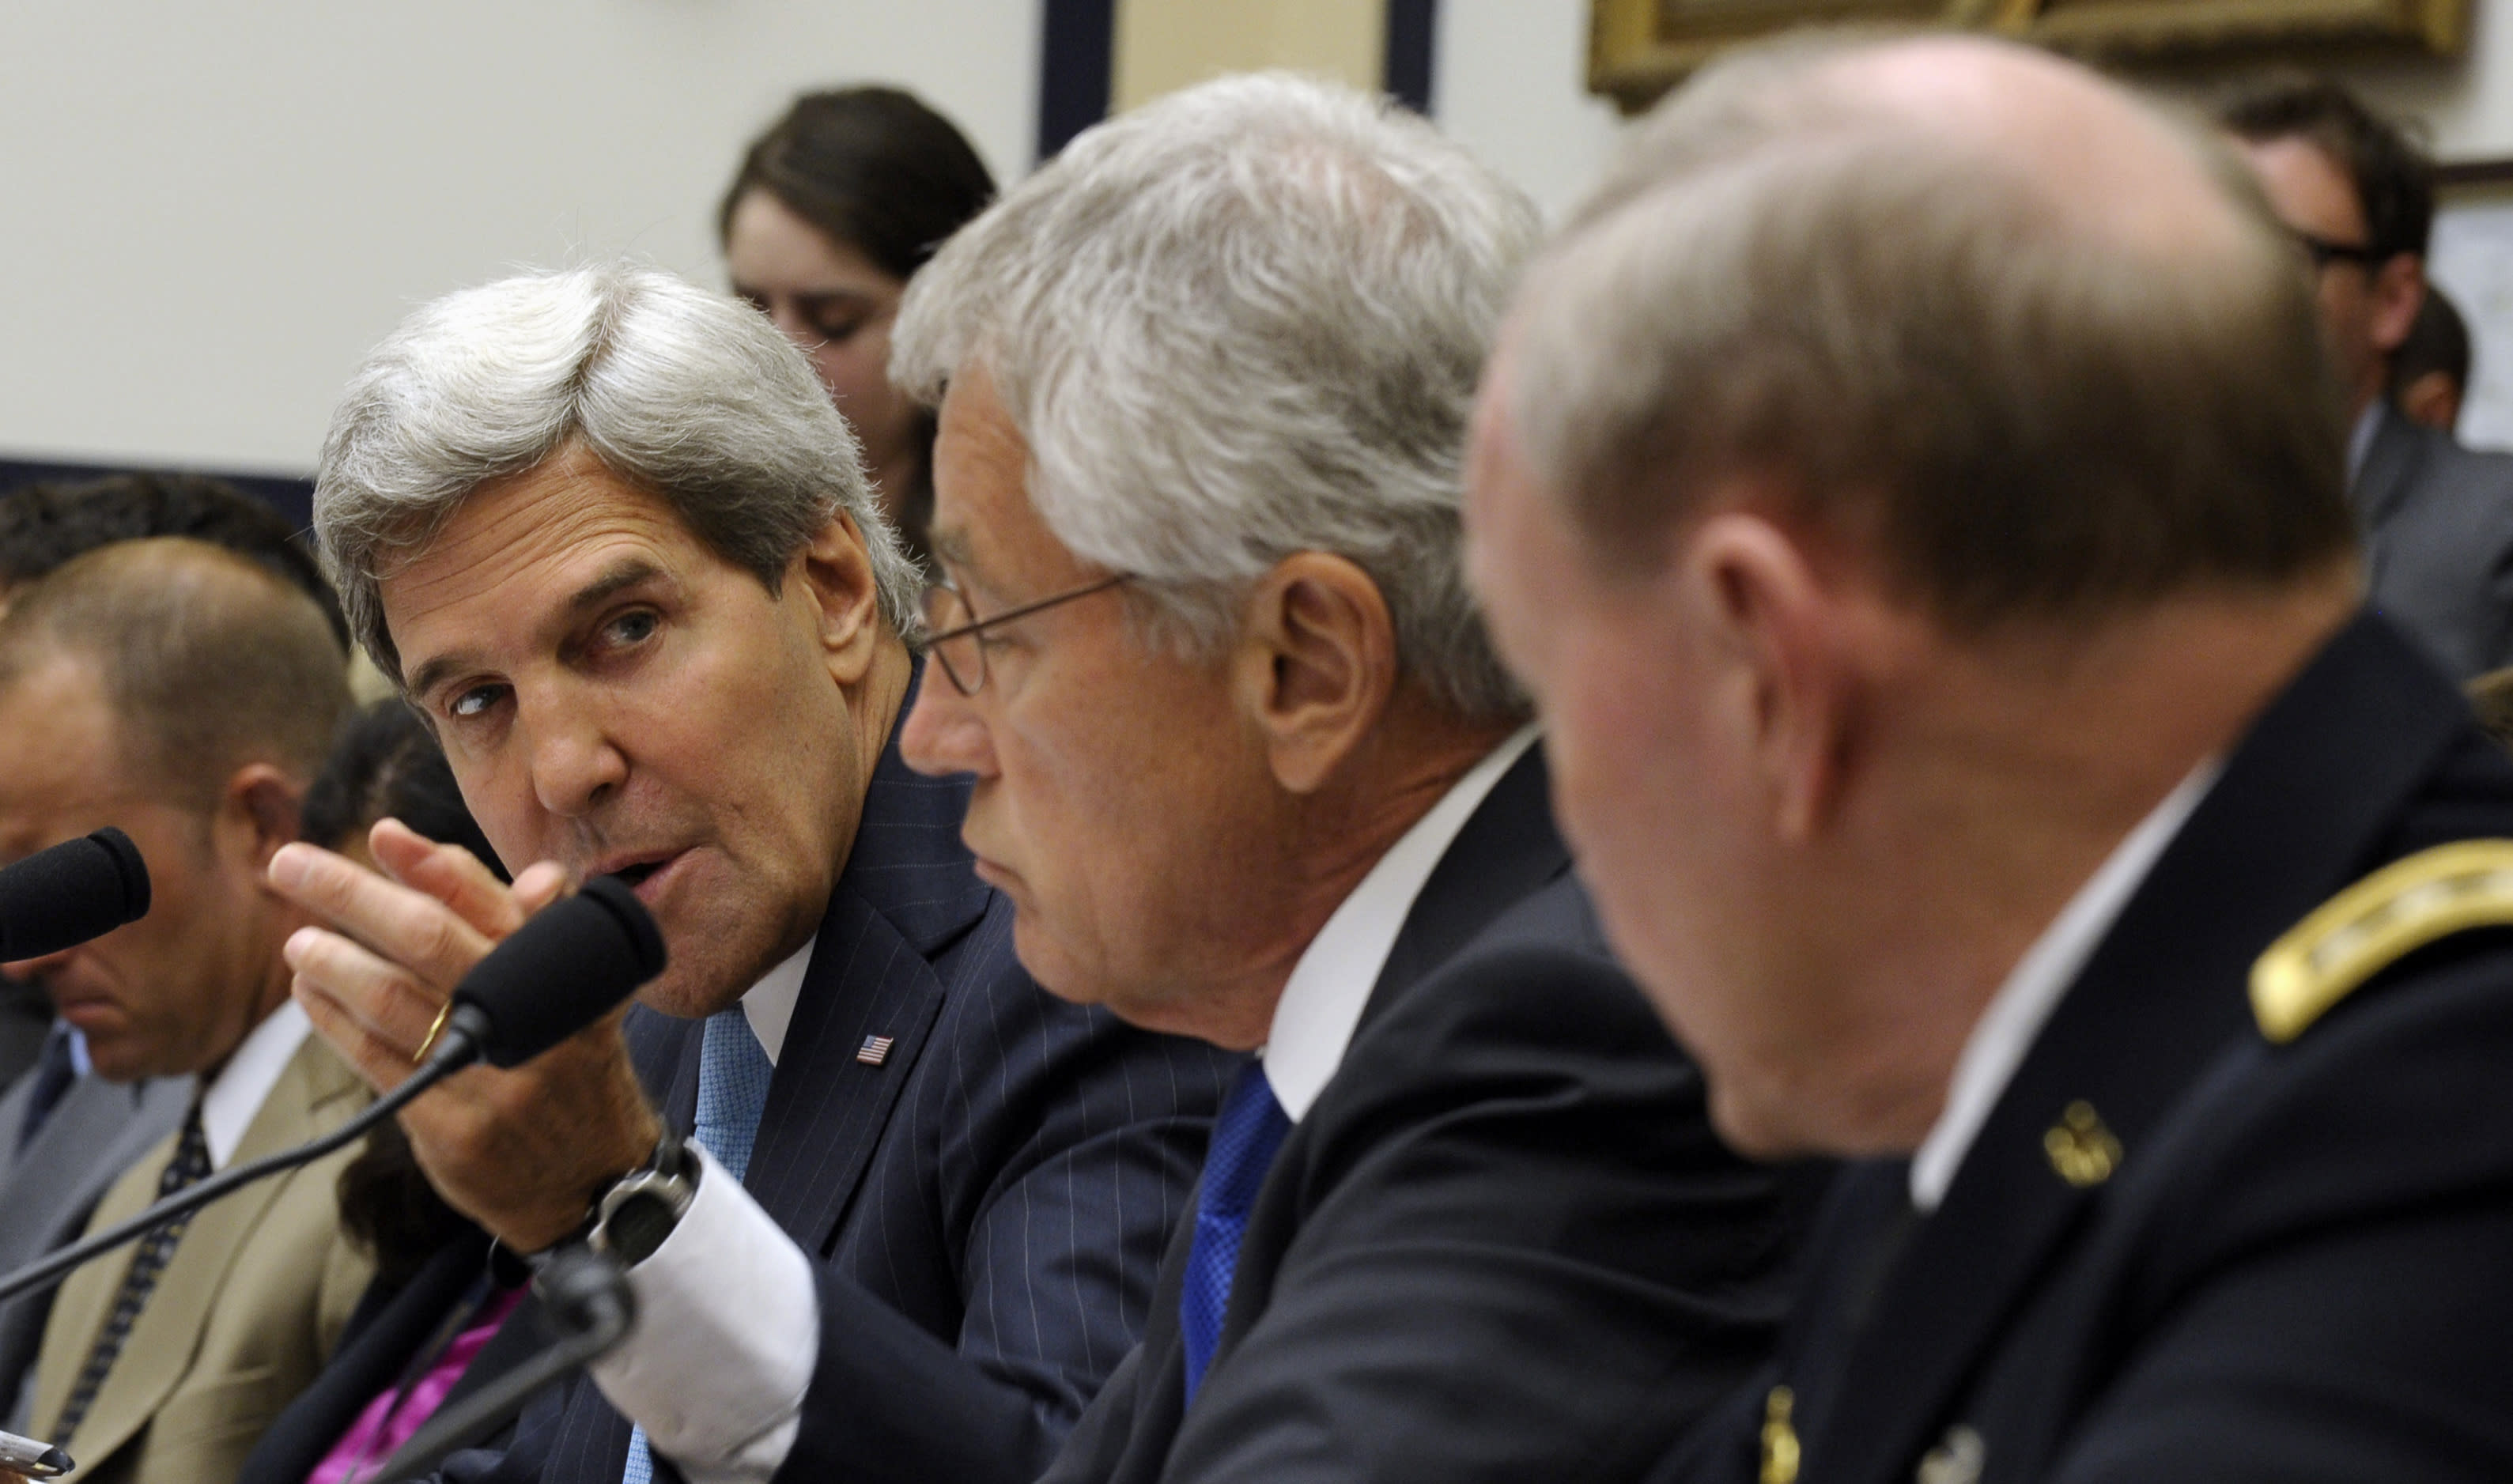 From left, Secretary of State John Kerry, Defense Secretary Chuck Hagel and Joint Chiefs Chairman Gen. Martin Dempsey, testify on Capitol Hill in Washington, Tuesday, Sept. 10, 2013, before the House Armed Services Committee hearing on Syria. (AP Photo/Susan Walsh)